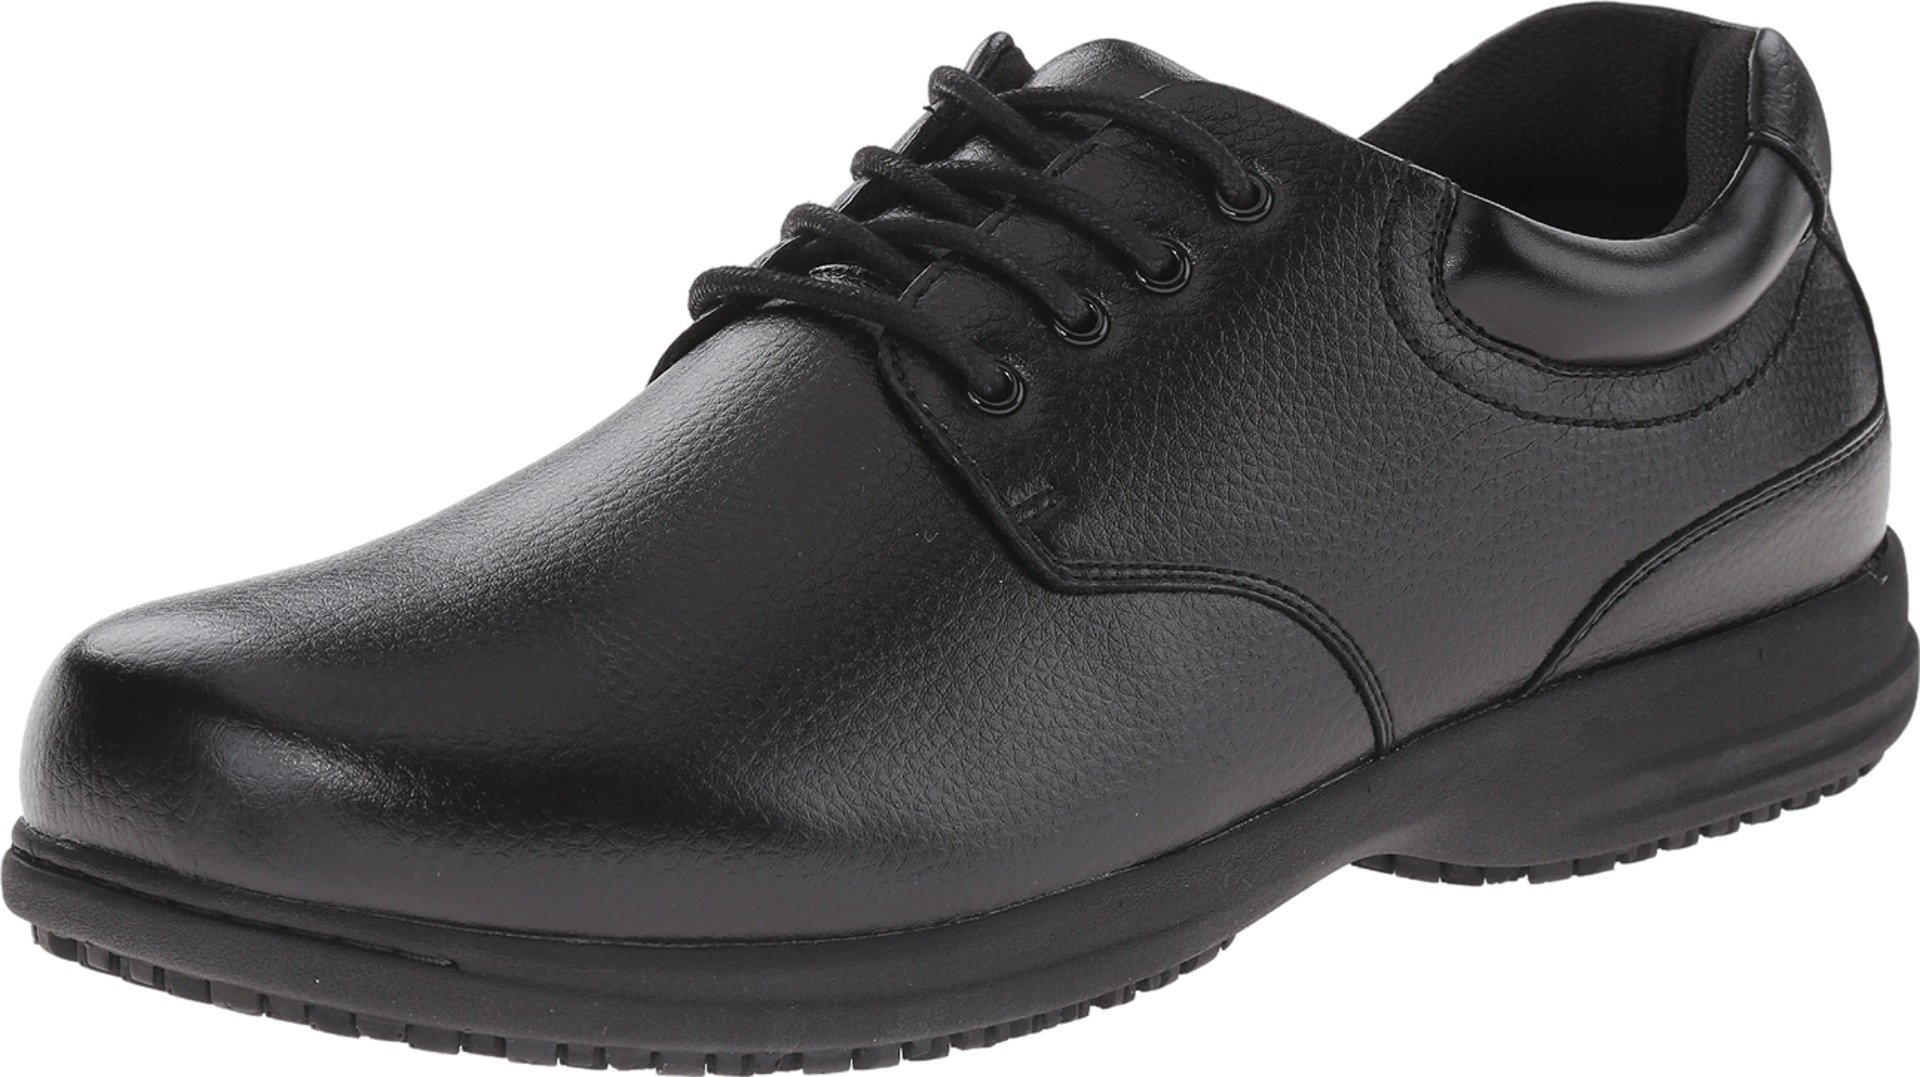 Nunn Bush Men's STU Oxford, Black, 8.5 M US